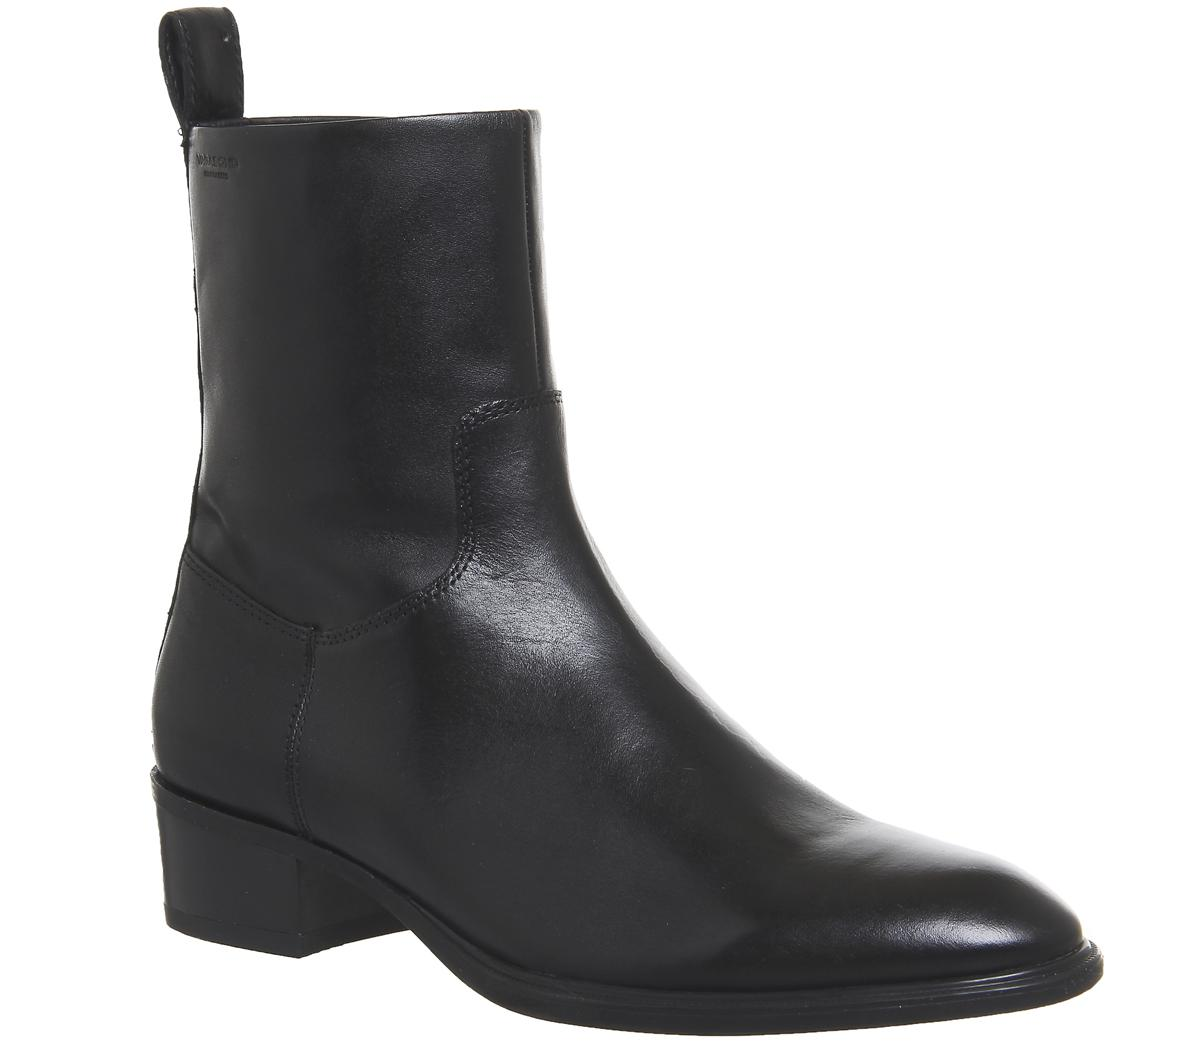 Vagabond Leather Meja High Cut Boots in